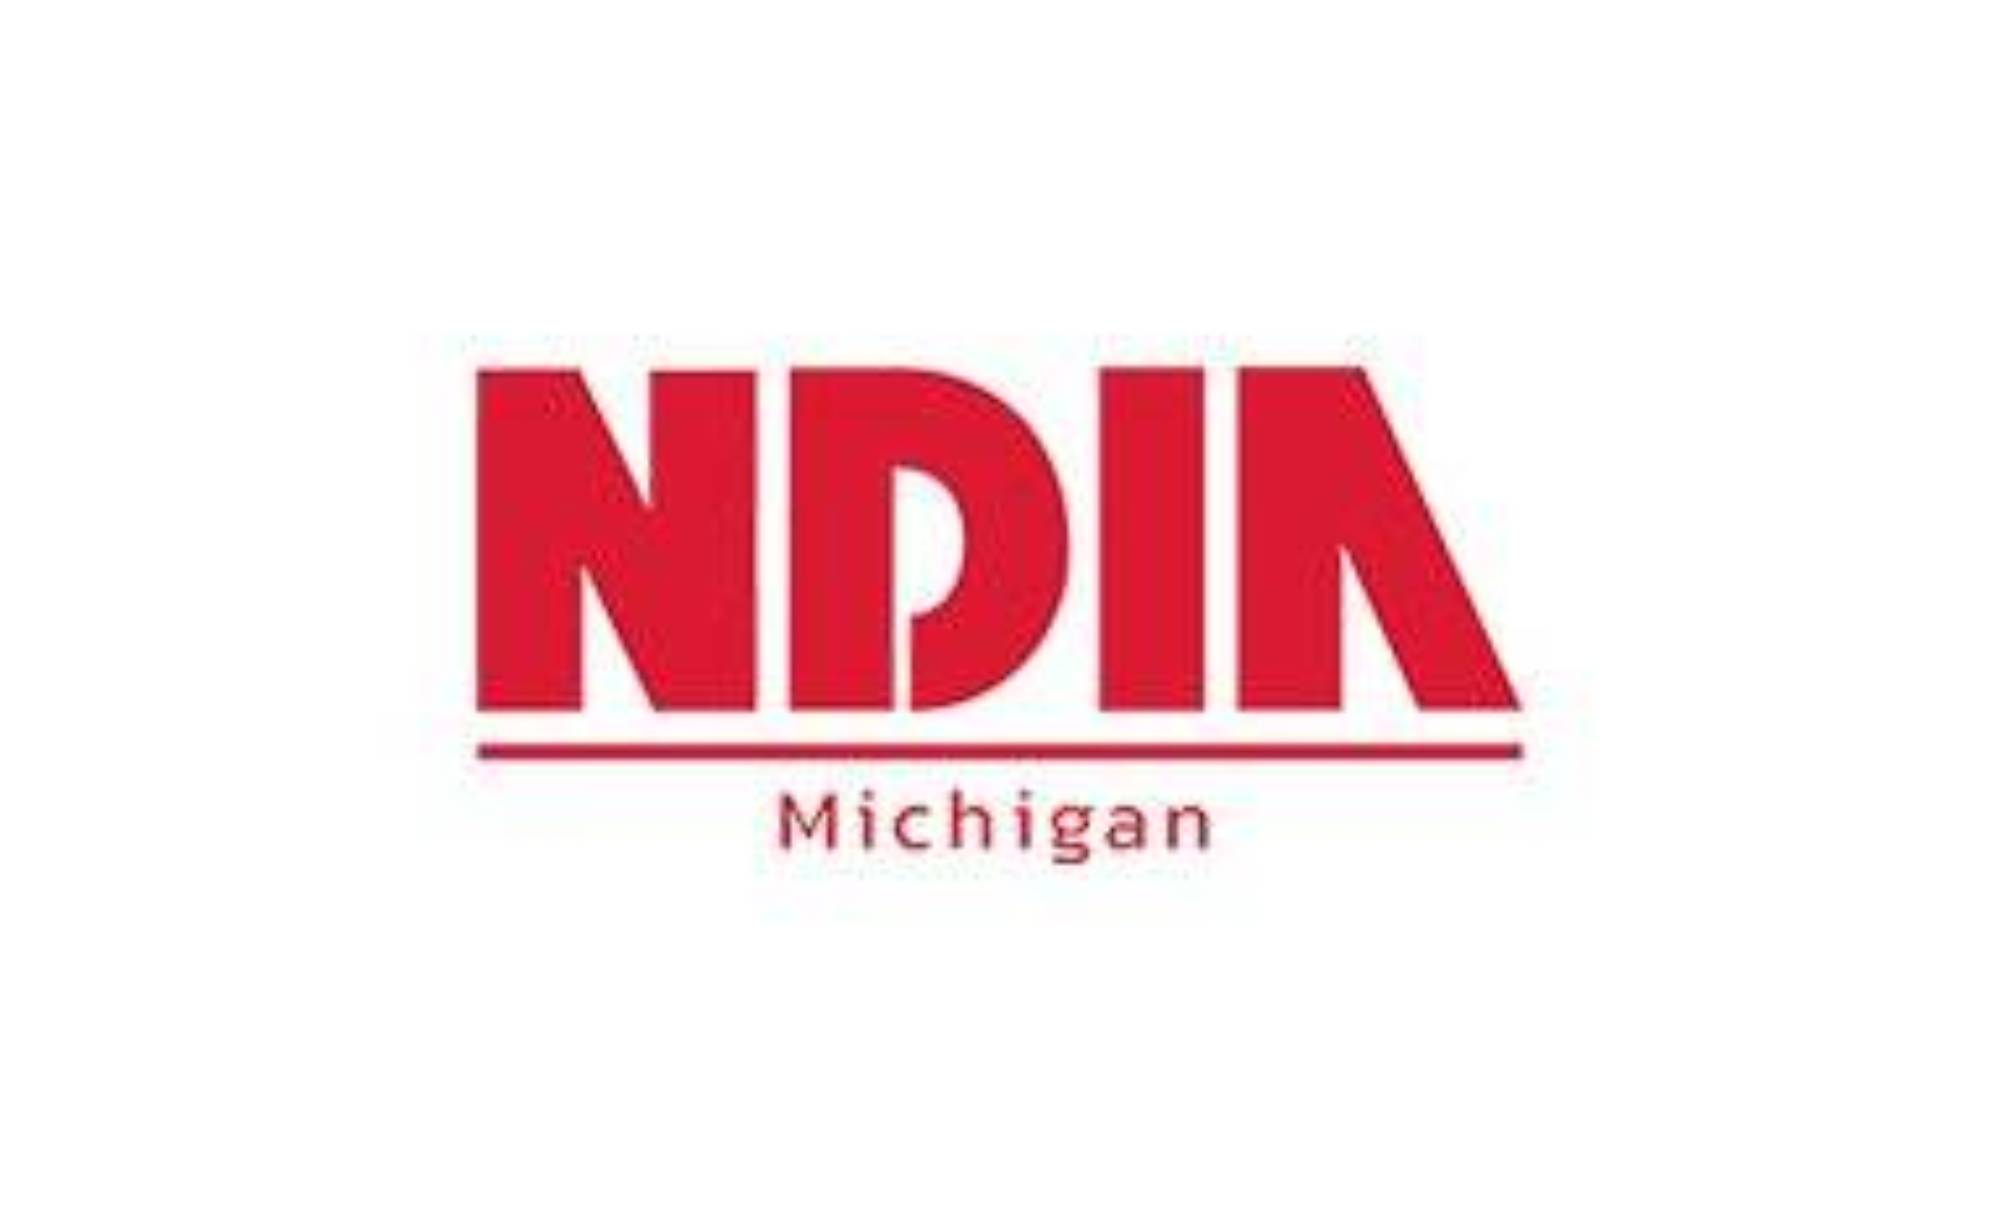 NDIA Michigan